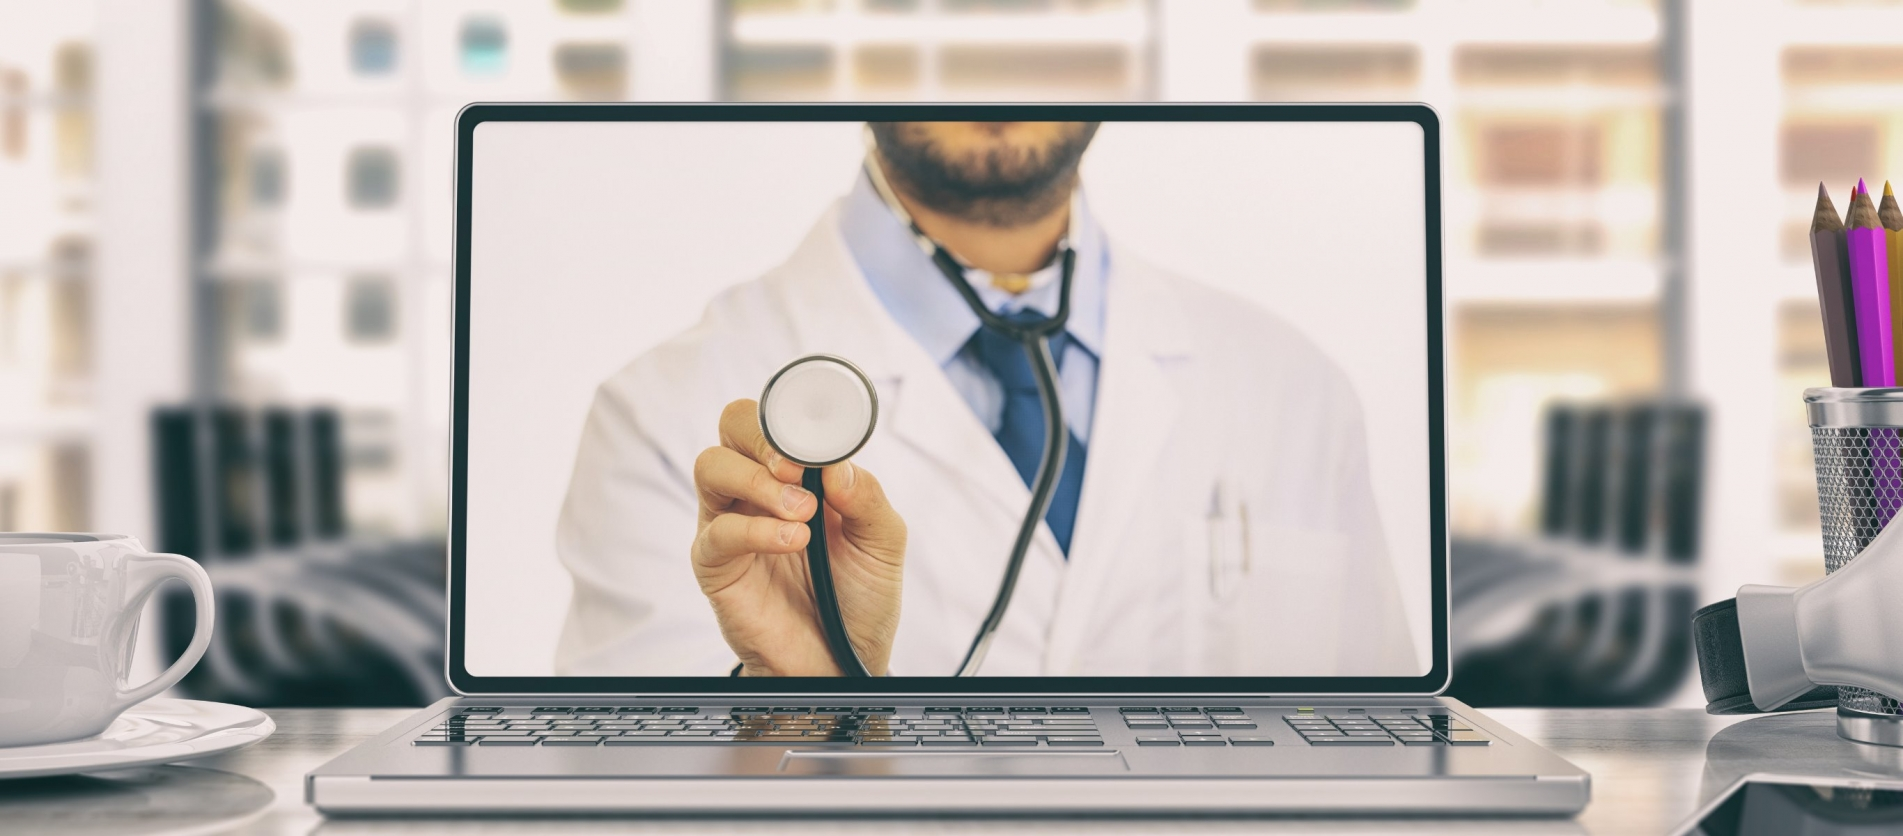 Another disconnect coming on telehealth in Florida